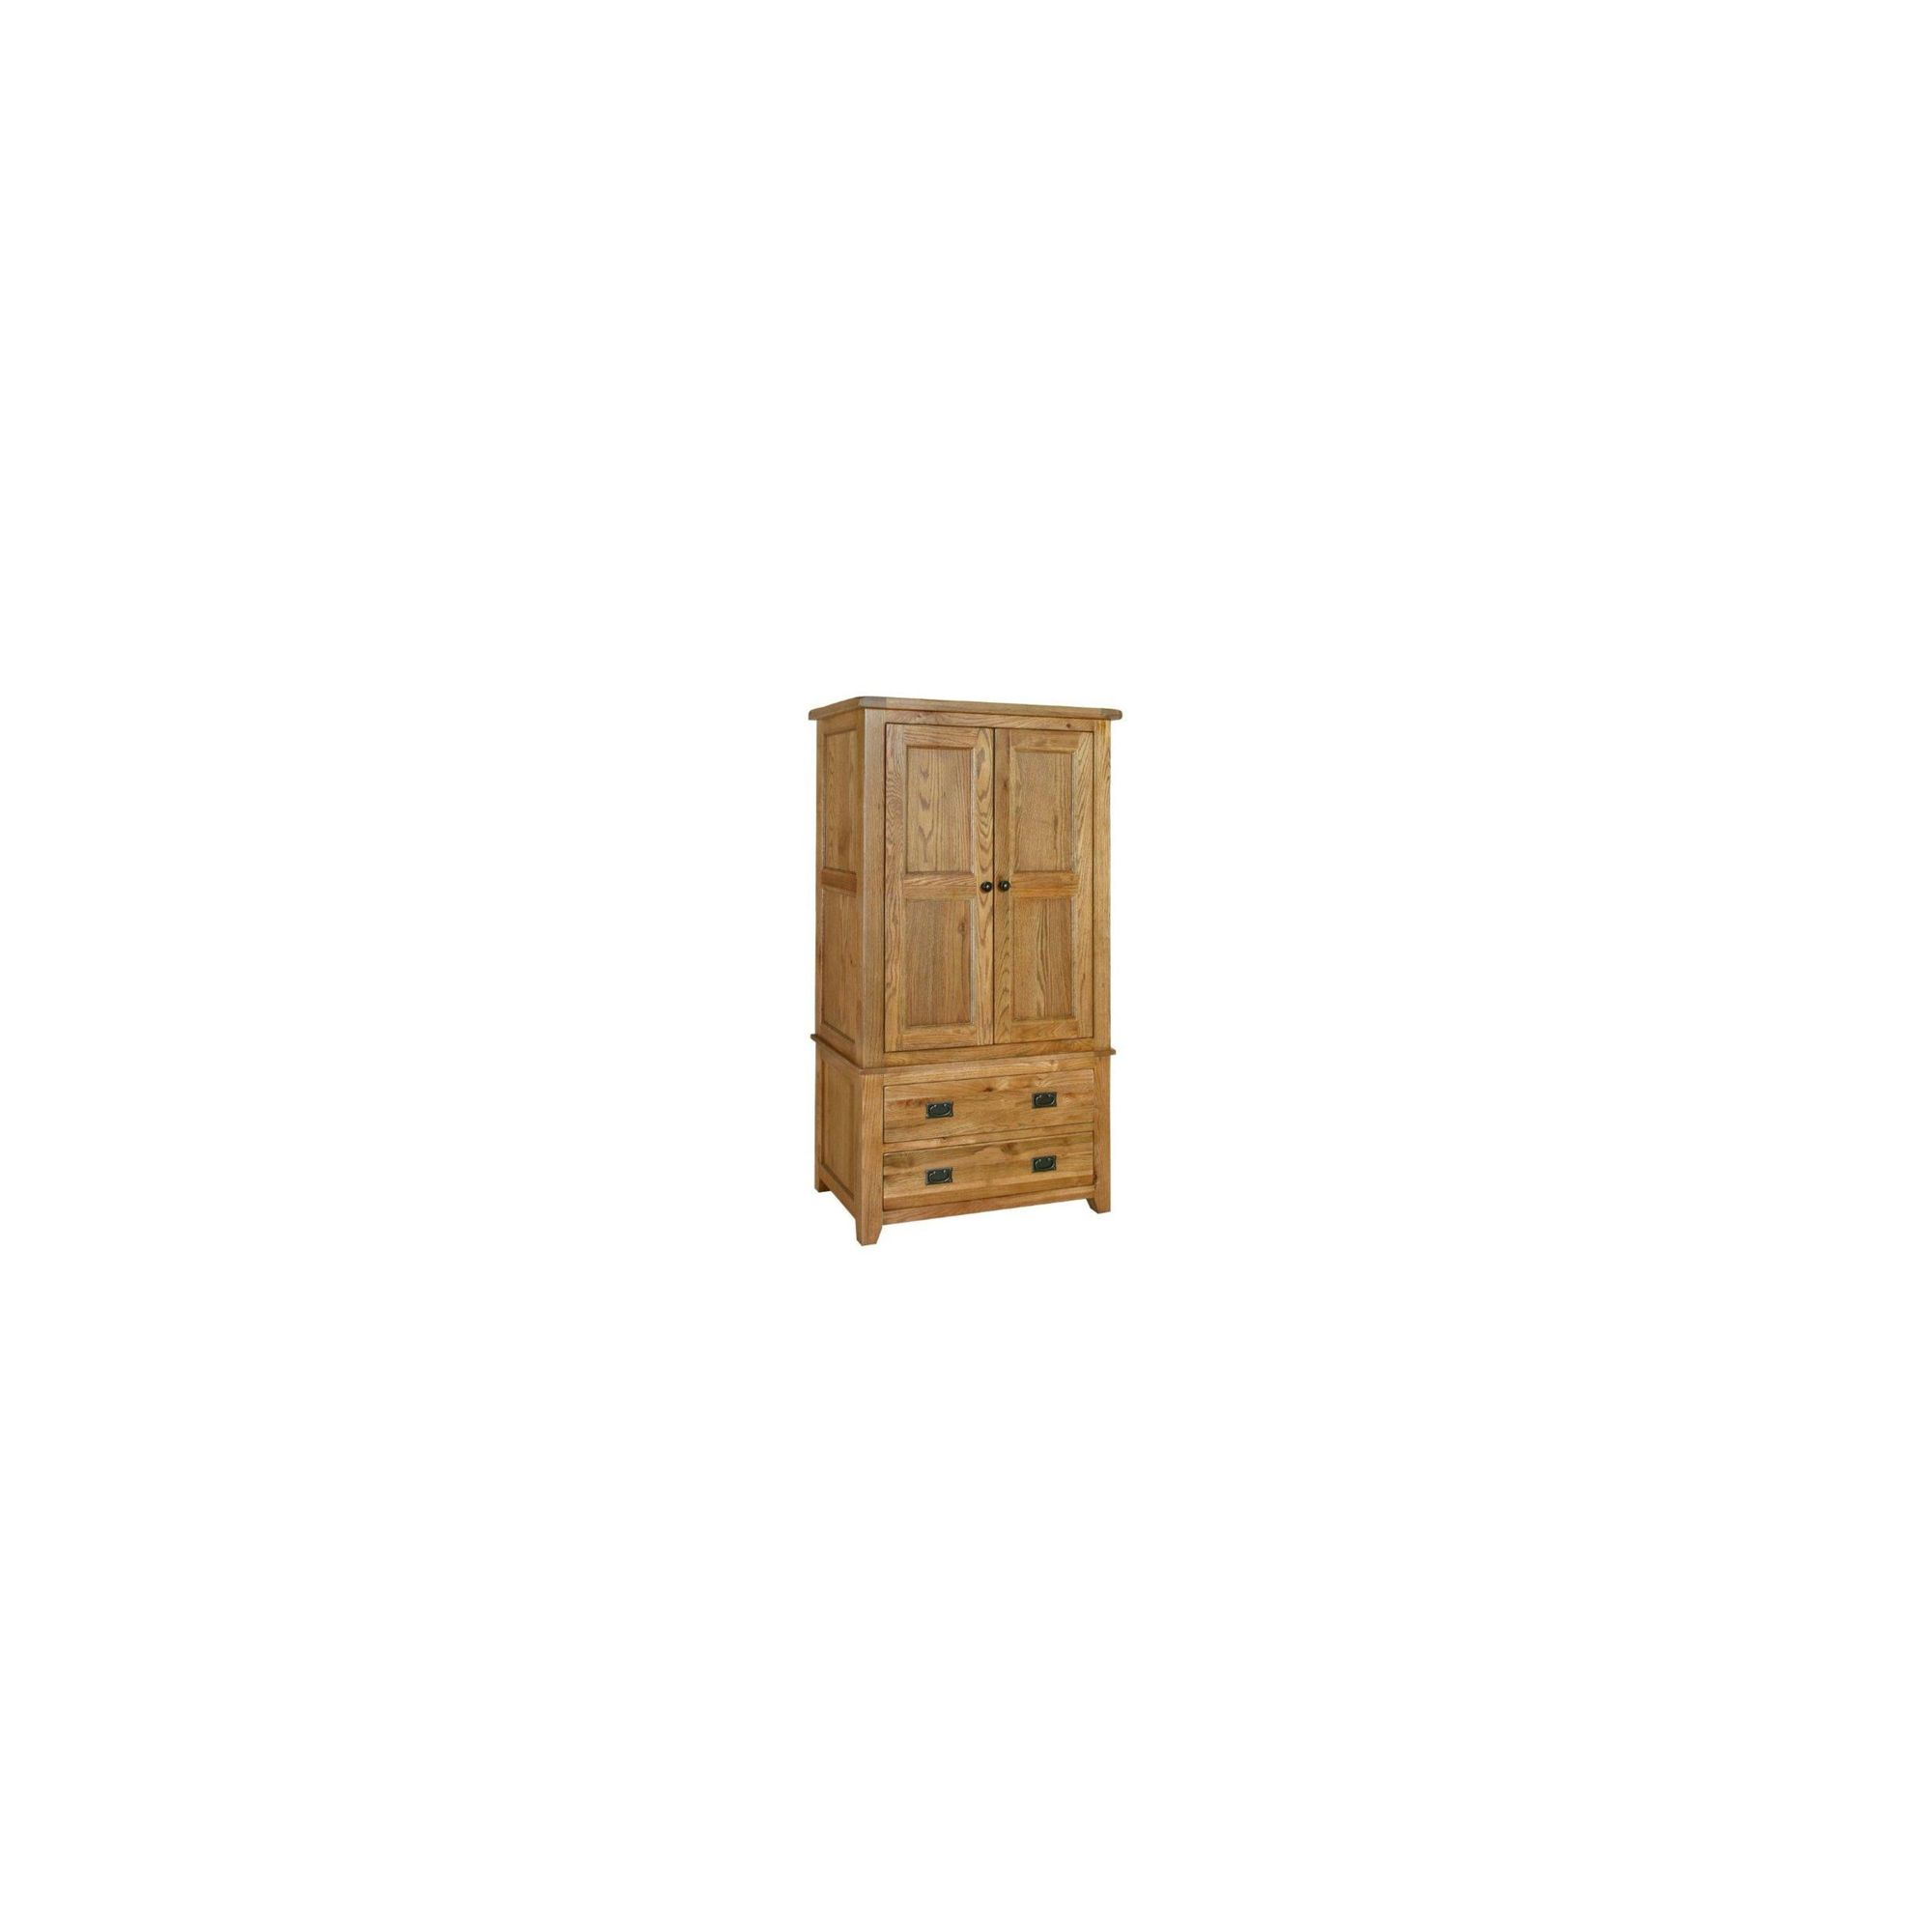 Kelburn Furniture Bordeaux Gents Wardrobe in Medium Oak Stain and Satin Lacquer at Tesco Direct